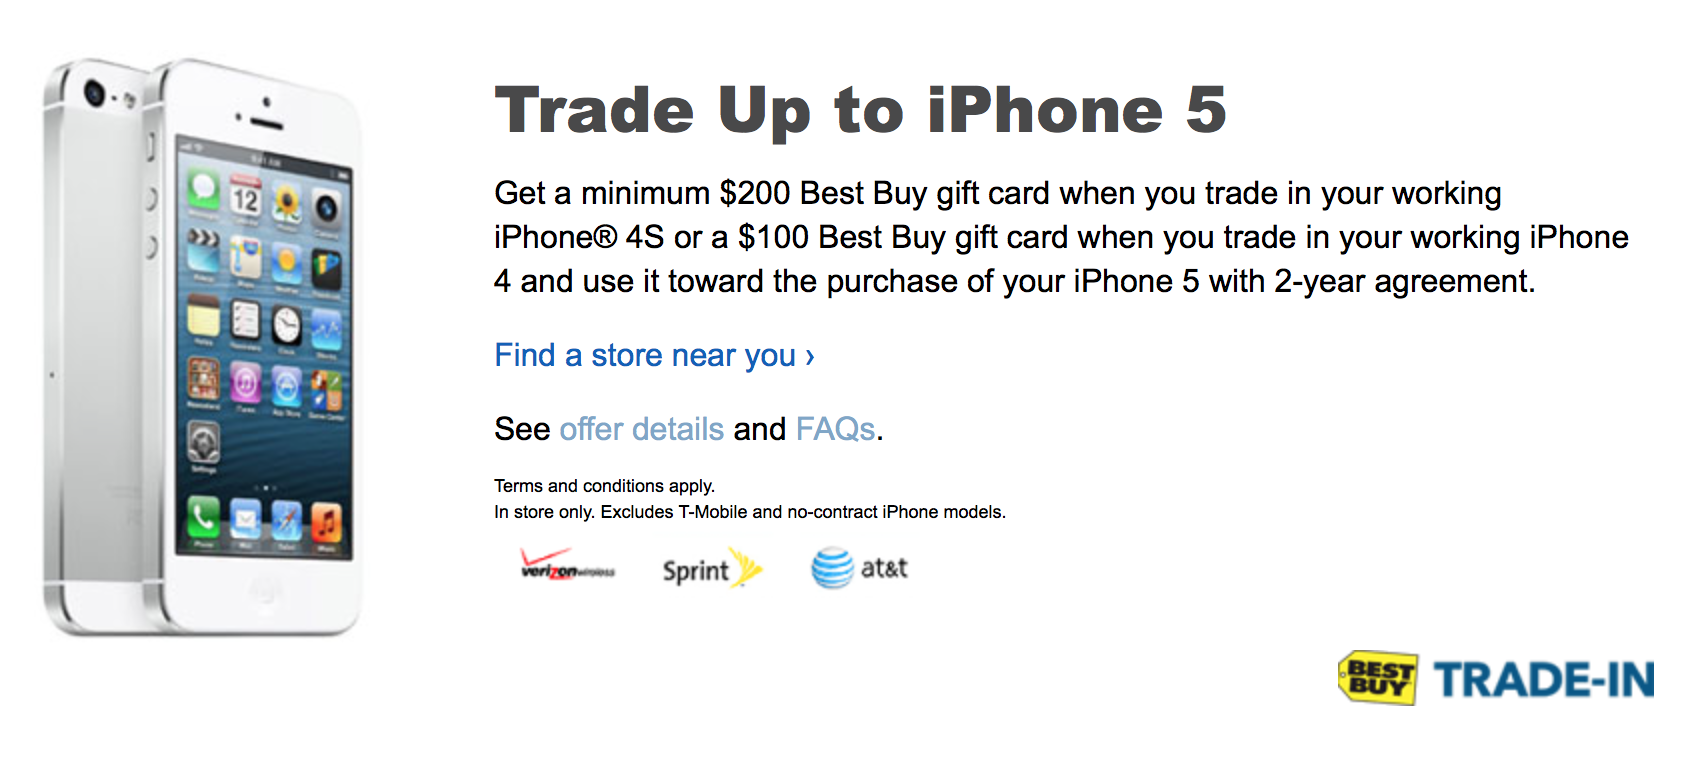 iphone 4s trade in value best buy offering 200 iphone trade in through sunday 1186